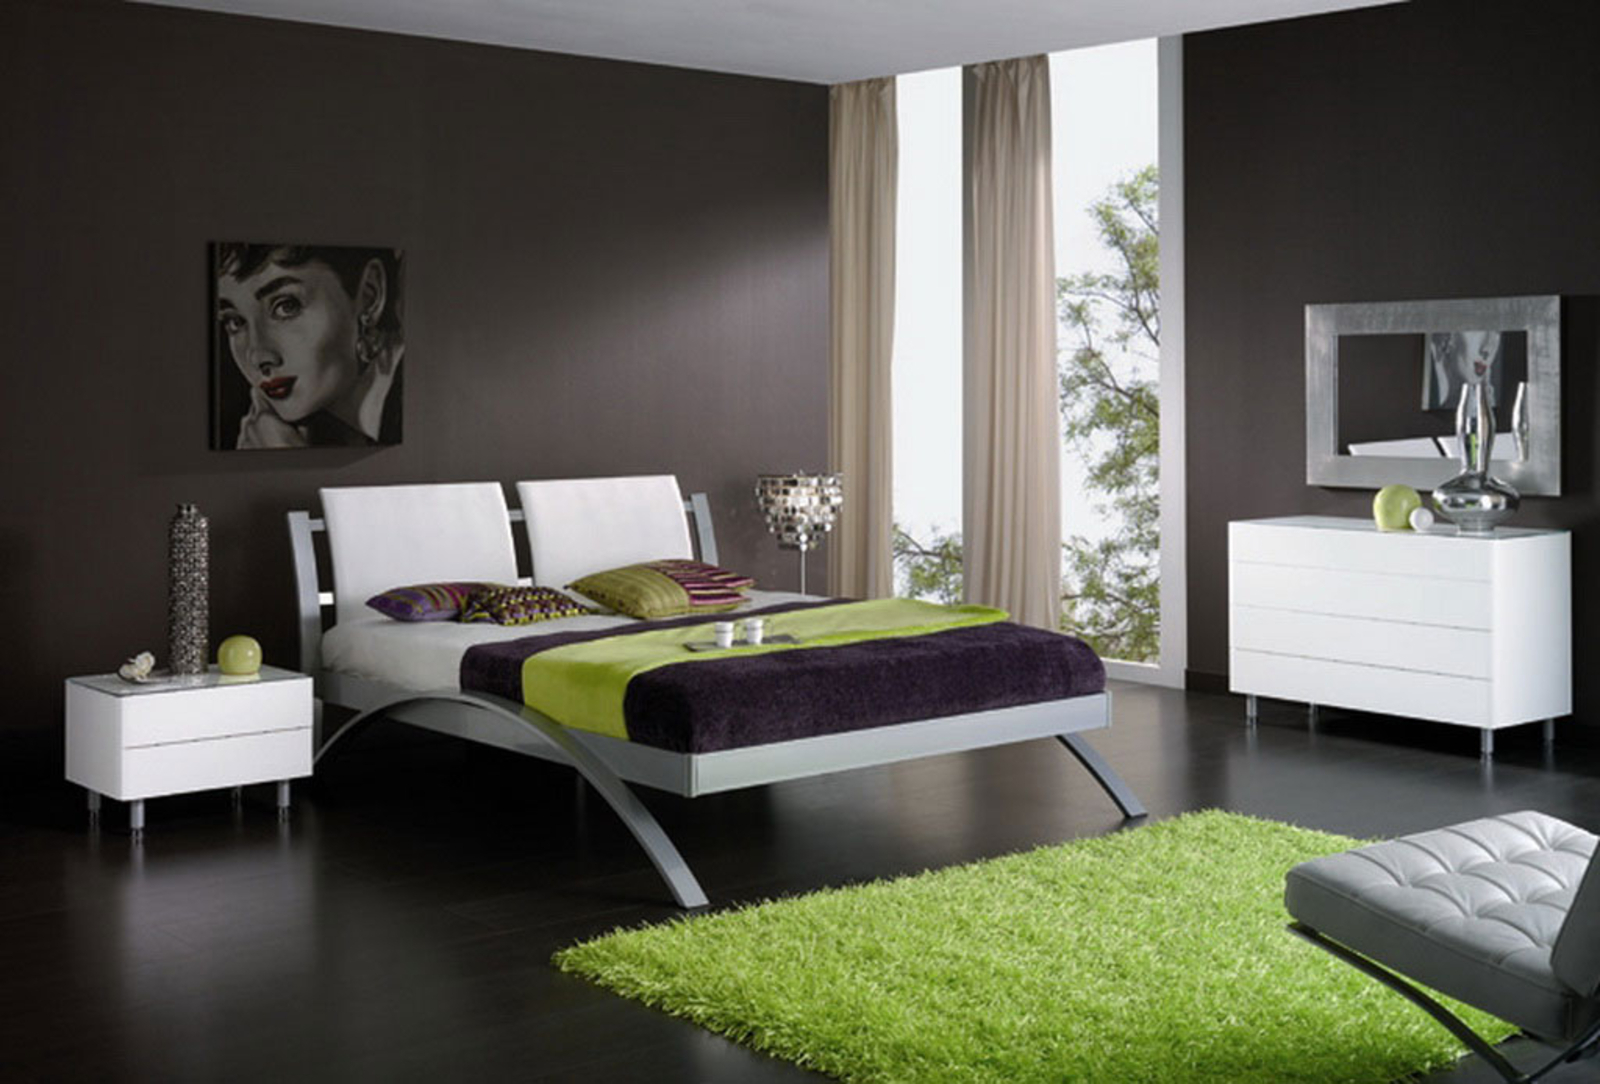 Ultra Modern Bedroom Contemporary Designs Tierra Este 27150 regarding 10 Clever Ways How to Build Ultra Modern Bedrooms